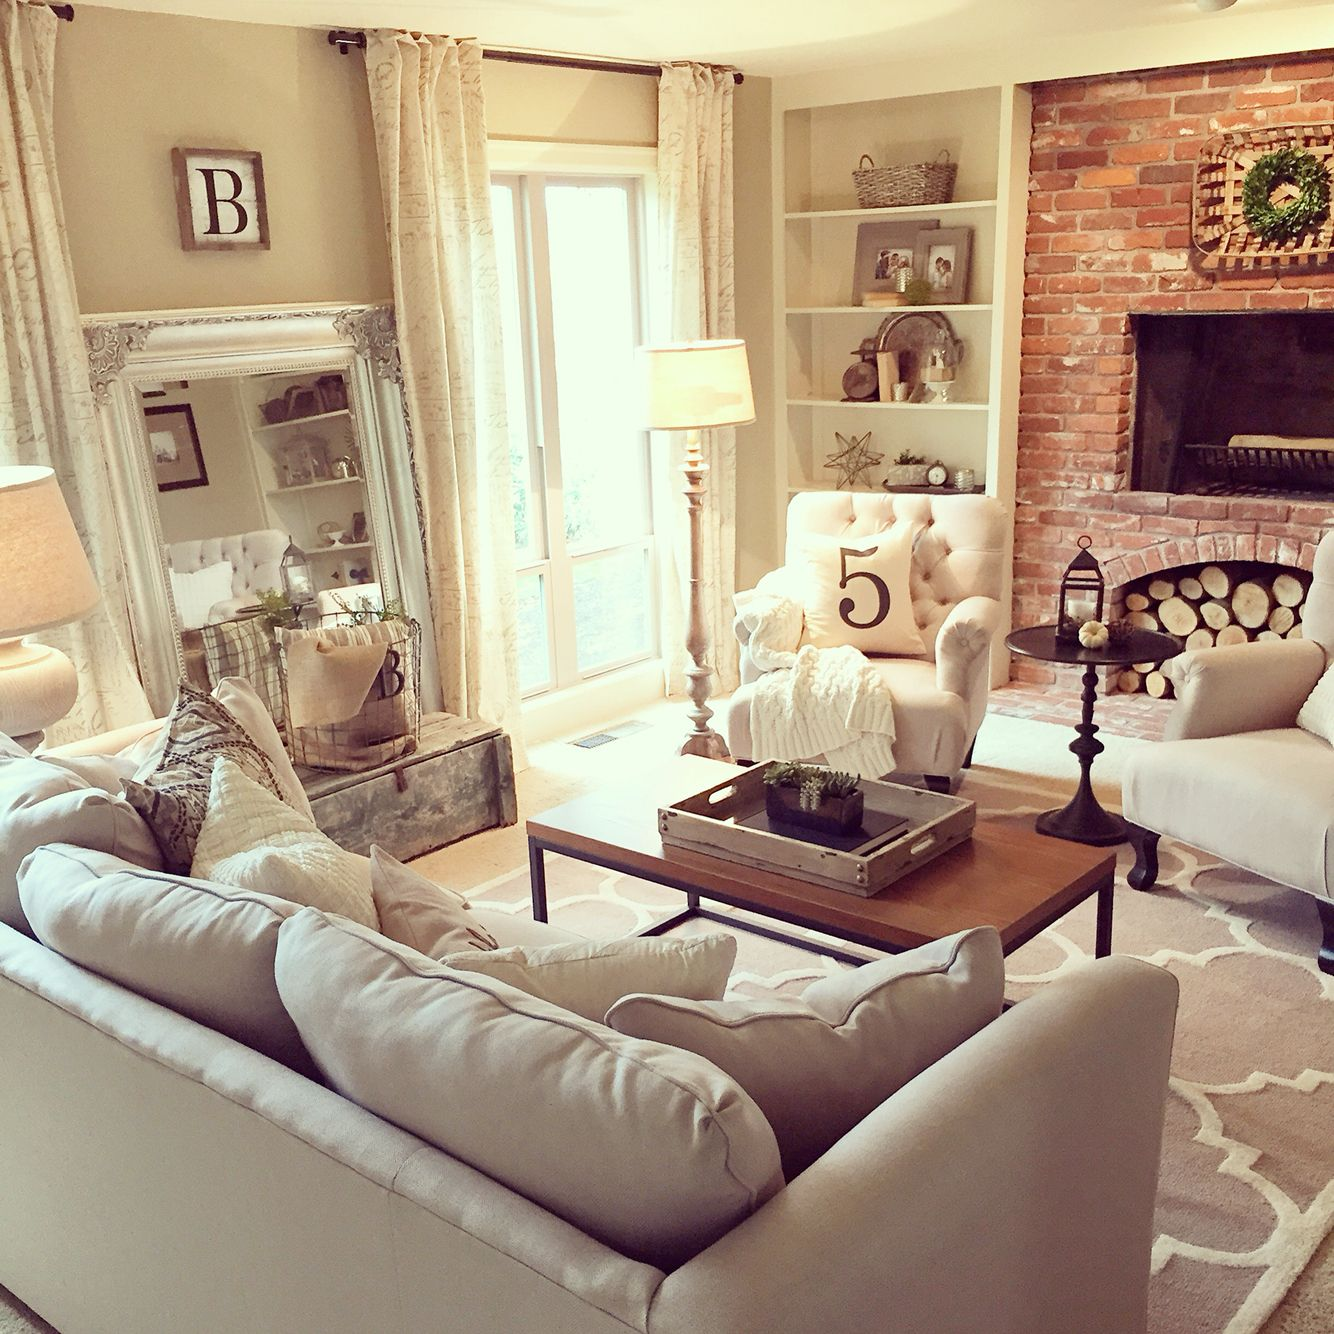 35 Cozy Home Interior Design Ideas: Living Room Refresh Completed For A Client. Love This